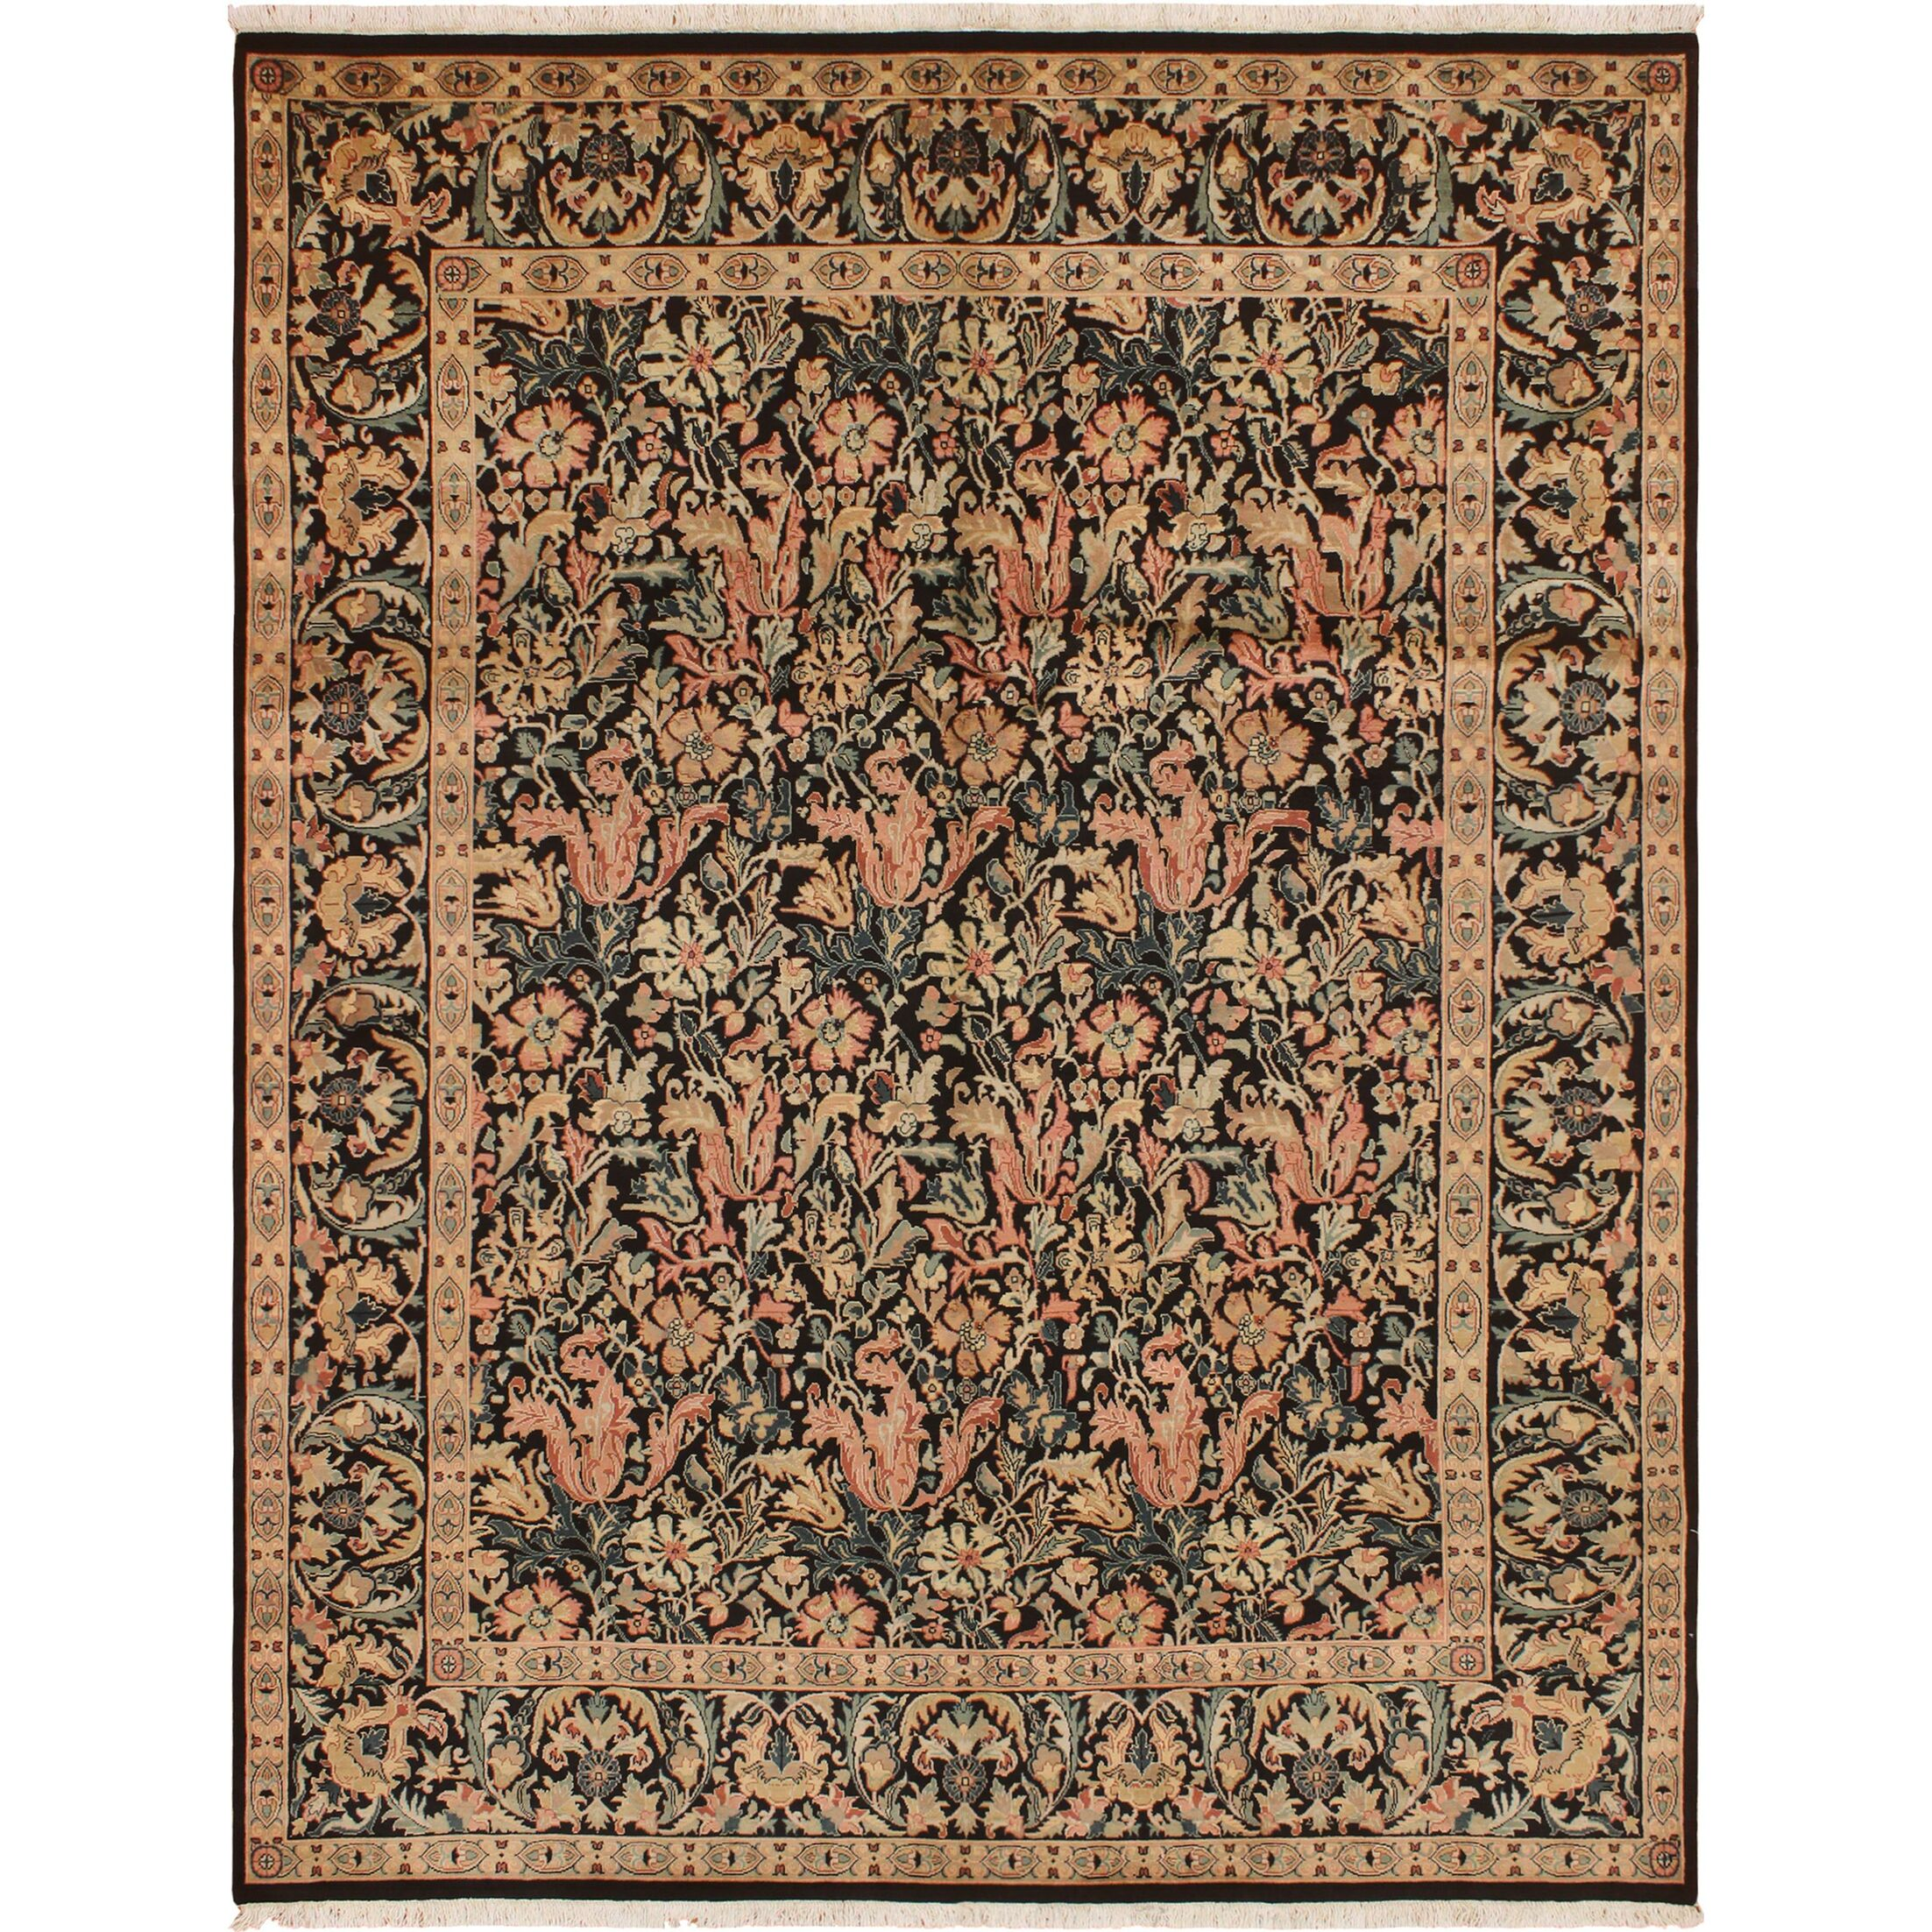 One-of-a-Kind Mulhall Hand-Knotted Wool Black/Pink Area Rug Rug Size: Rectangle 8' x 10'2